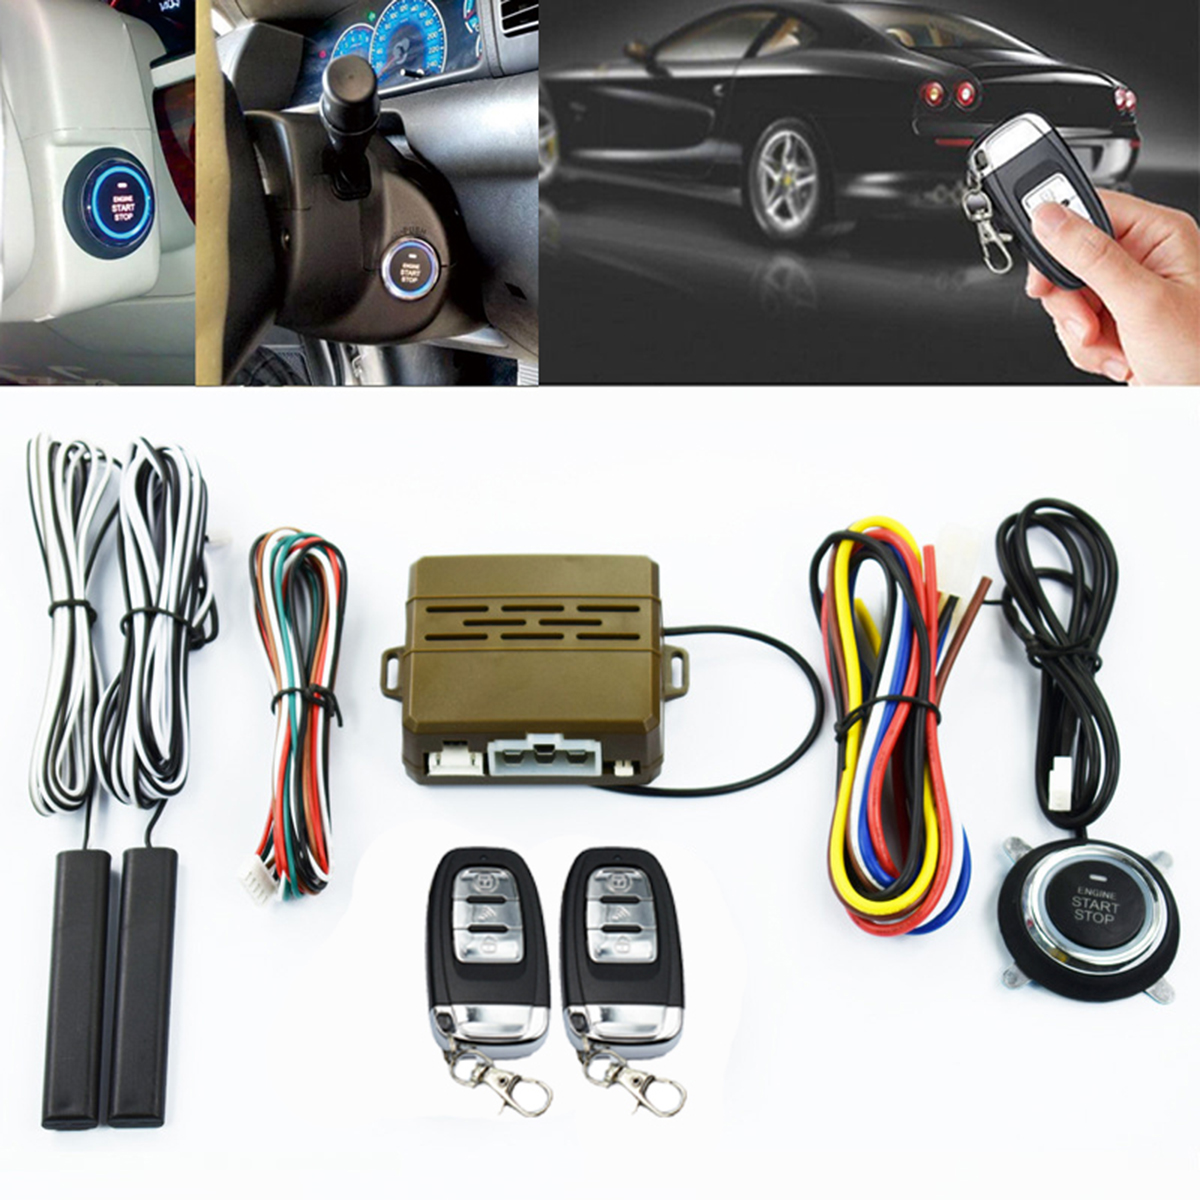 12V Entry Remote Button Starter Keyless Push PKE Ignition Car System Engine Alarm With 2 Smart remote control in Burglar Alarm from Automobiles Motorcycles